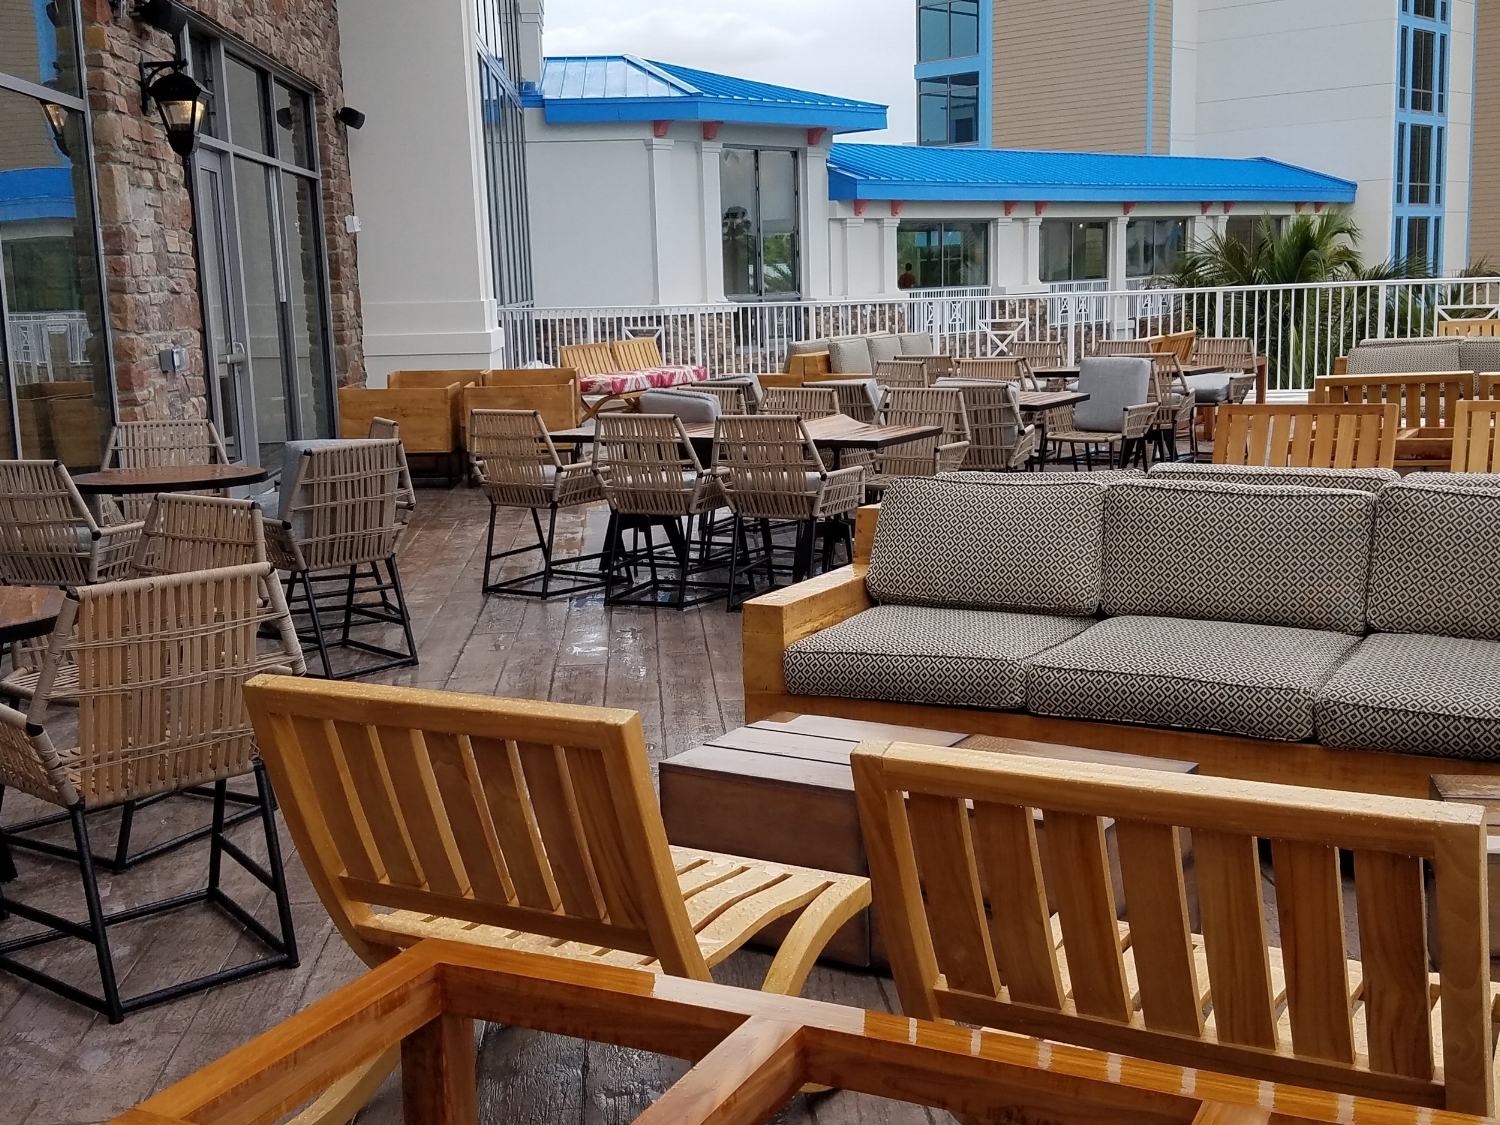 Outdoor Dining Area at Strong Water Tavern